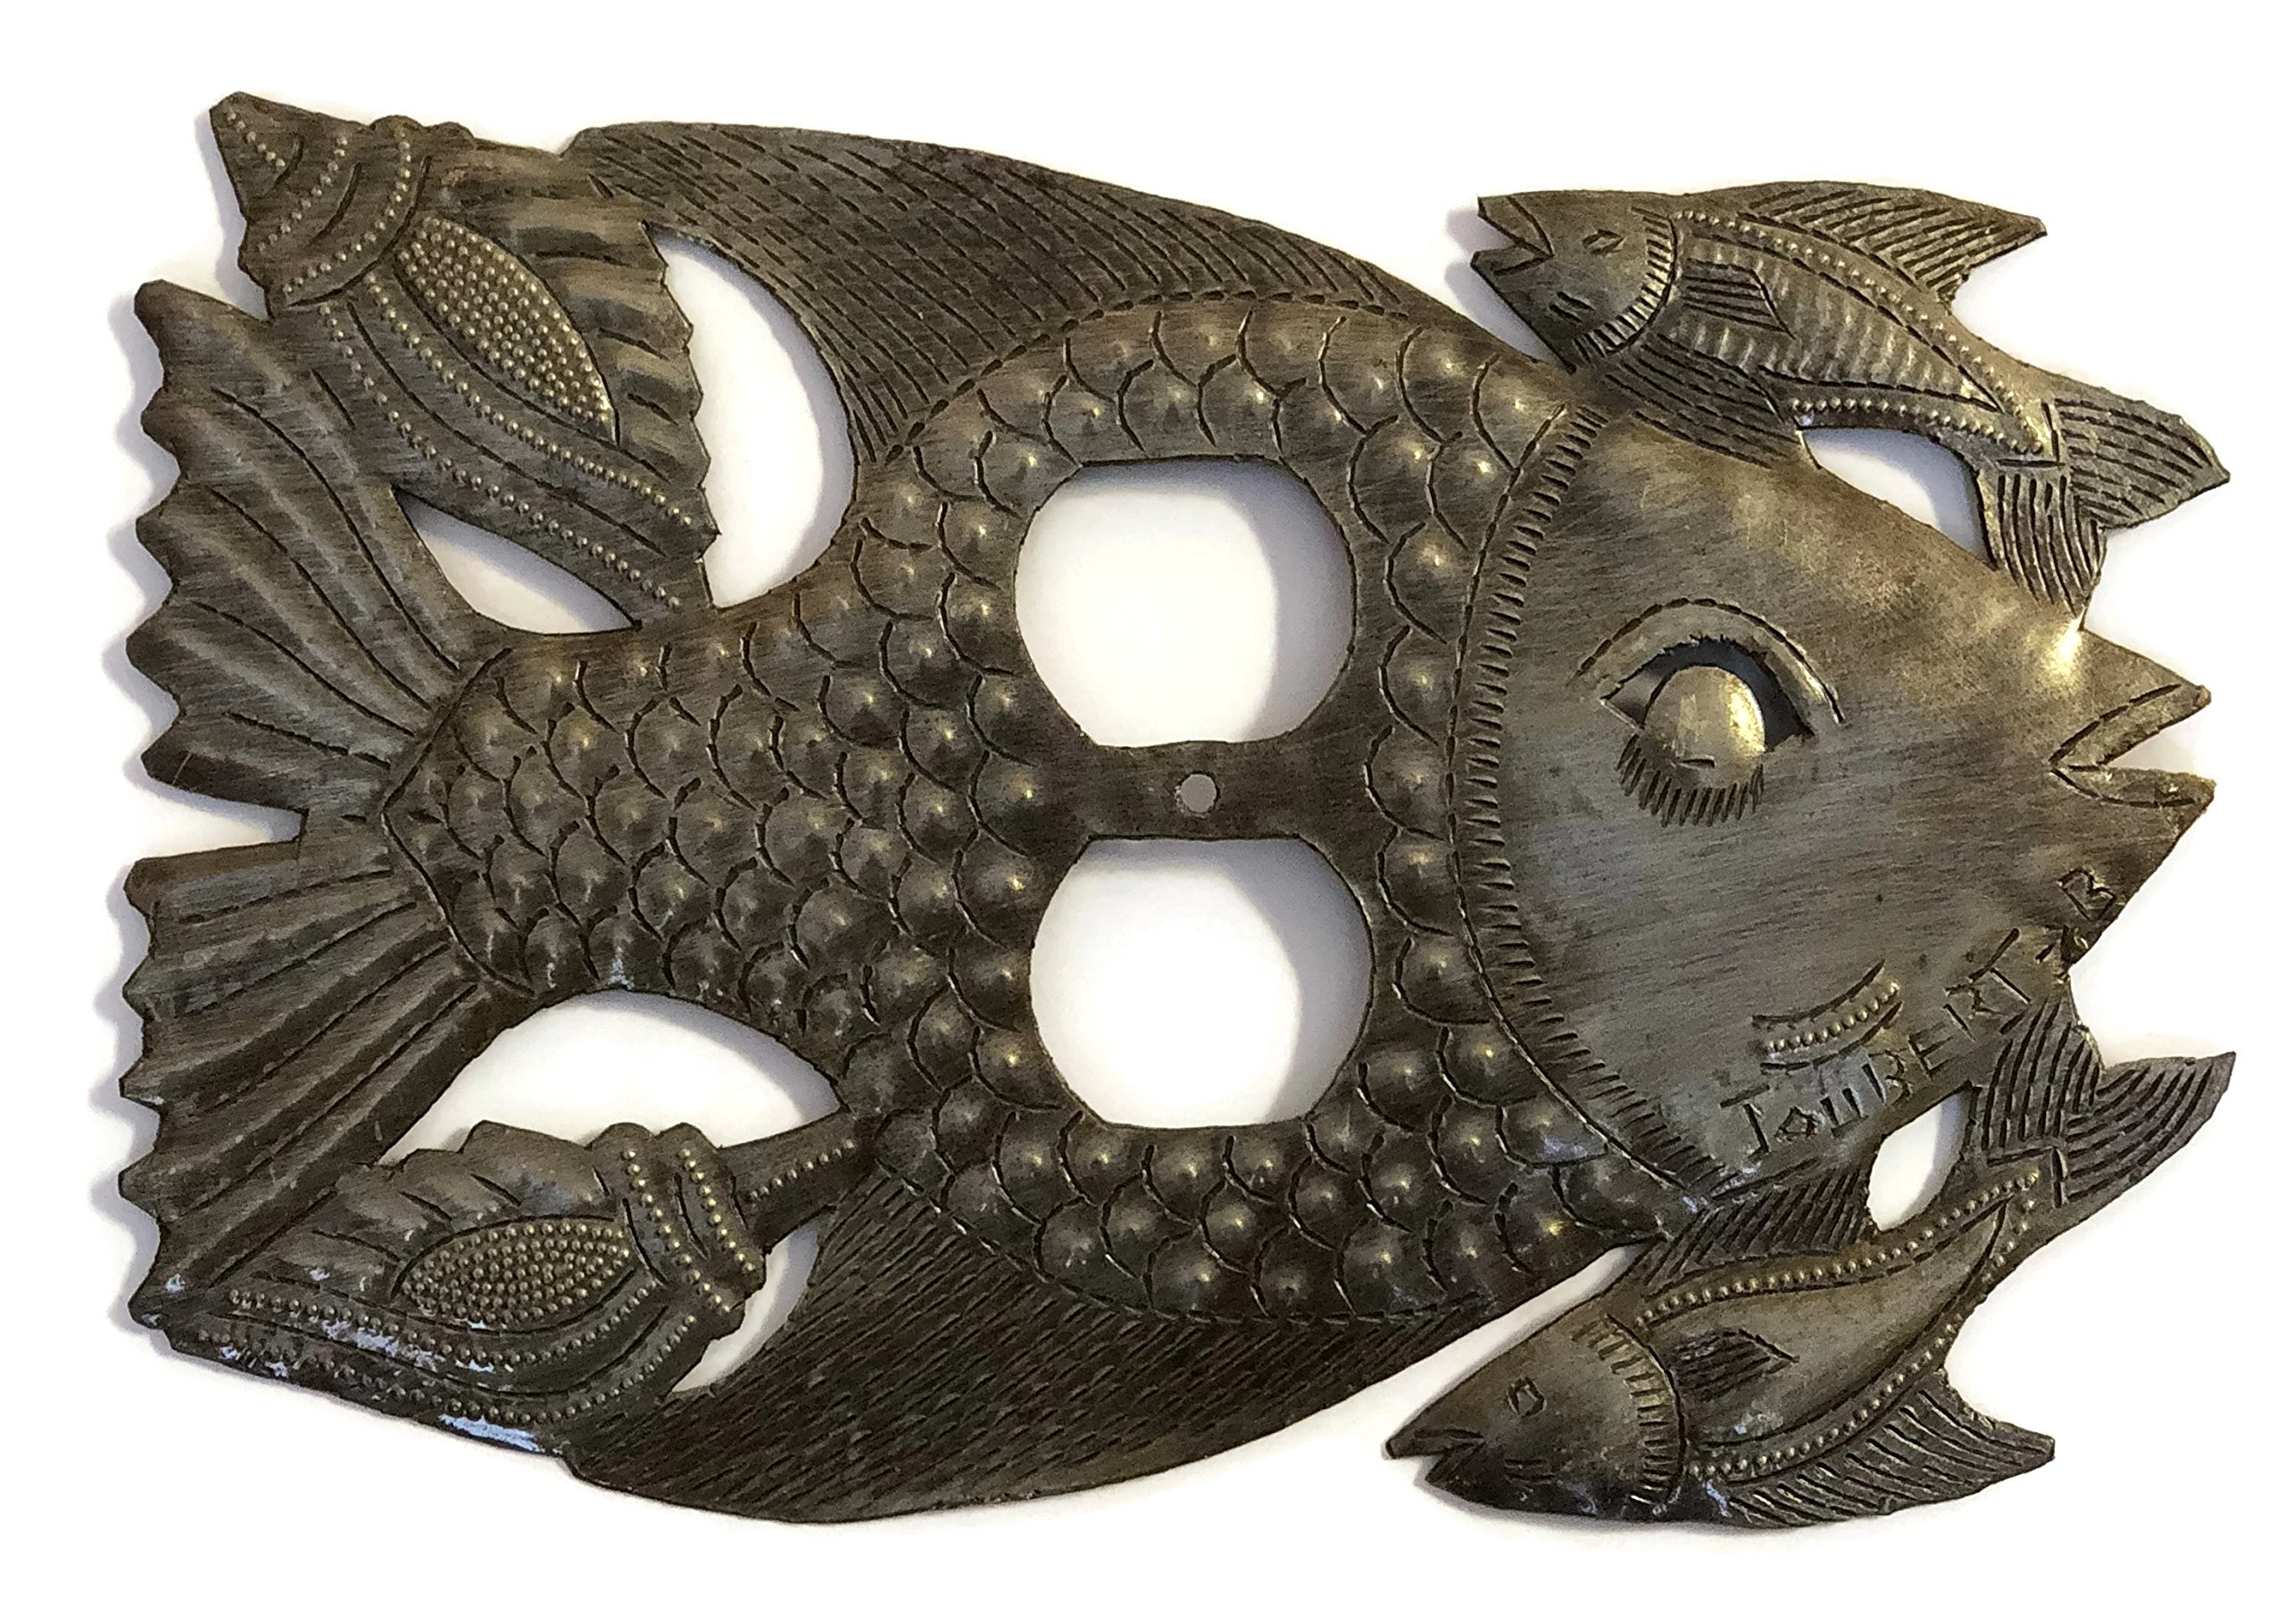 Recycled Metal Plate Cover in Fish Design From Haiti, Artistic Design 9'' x 6''